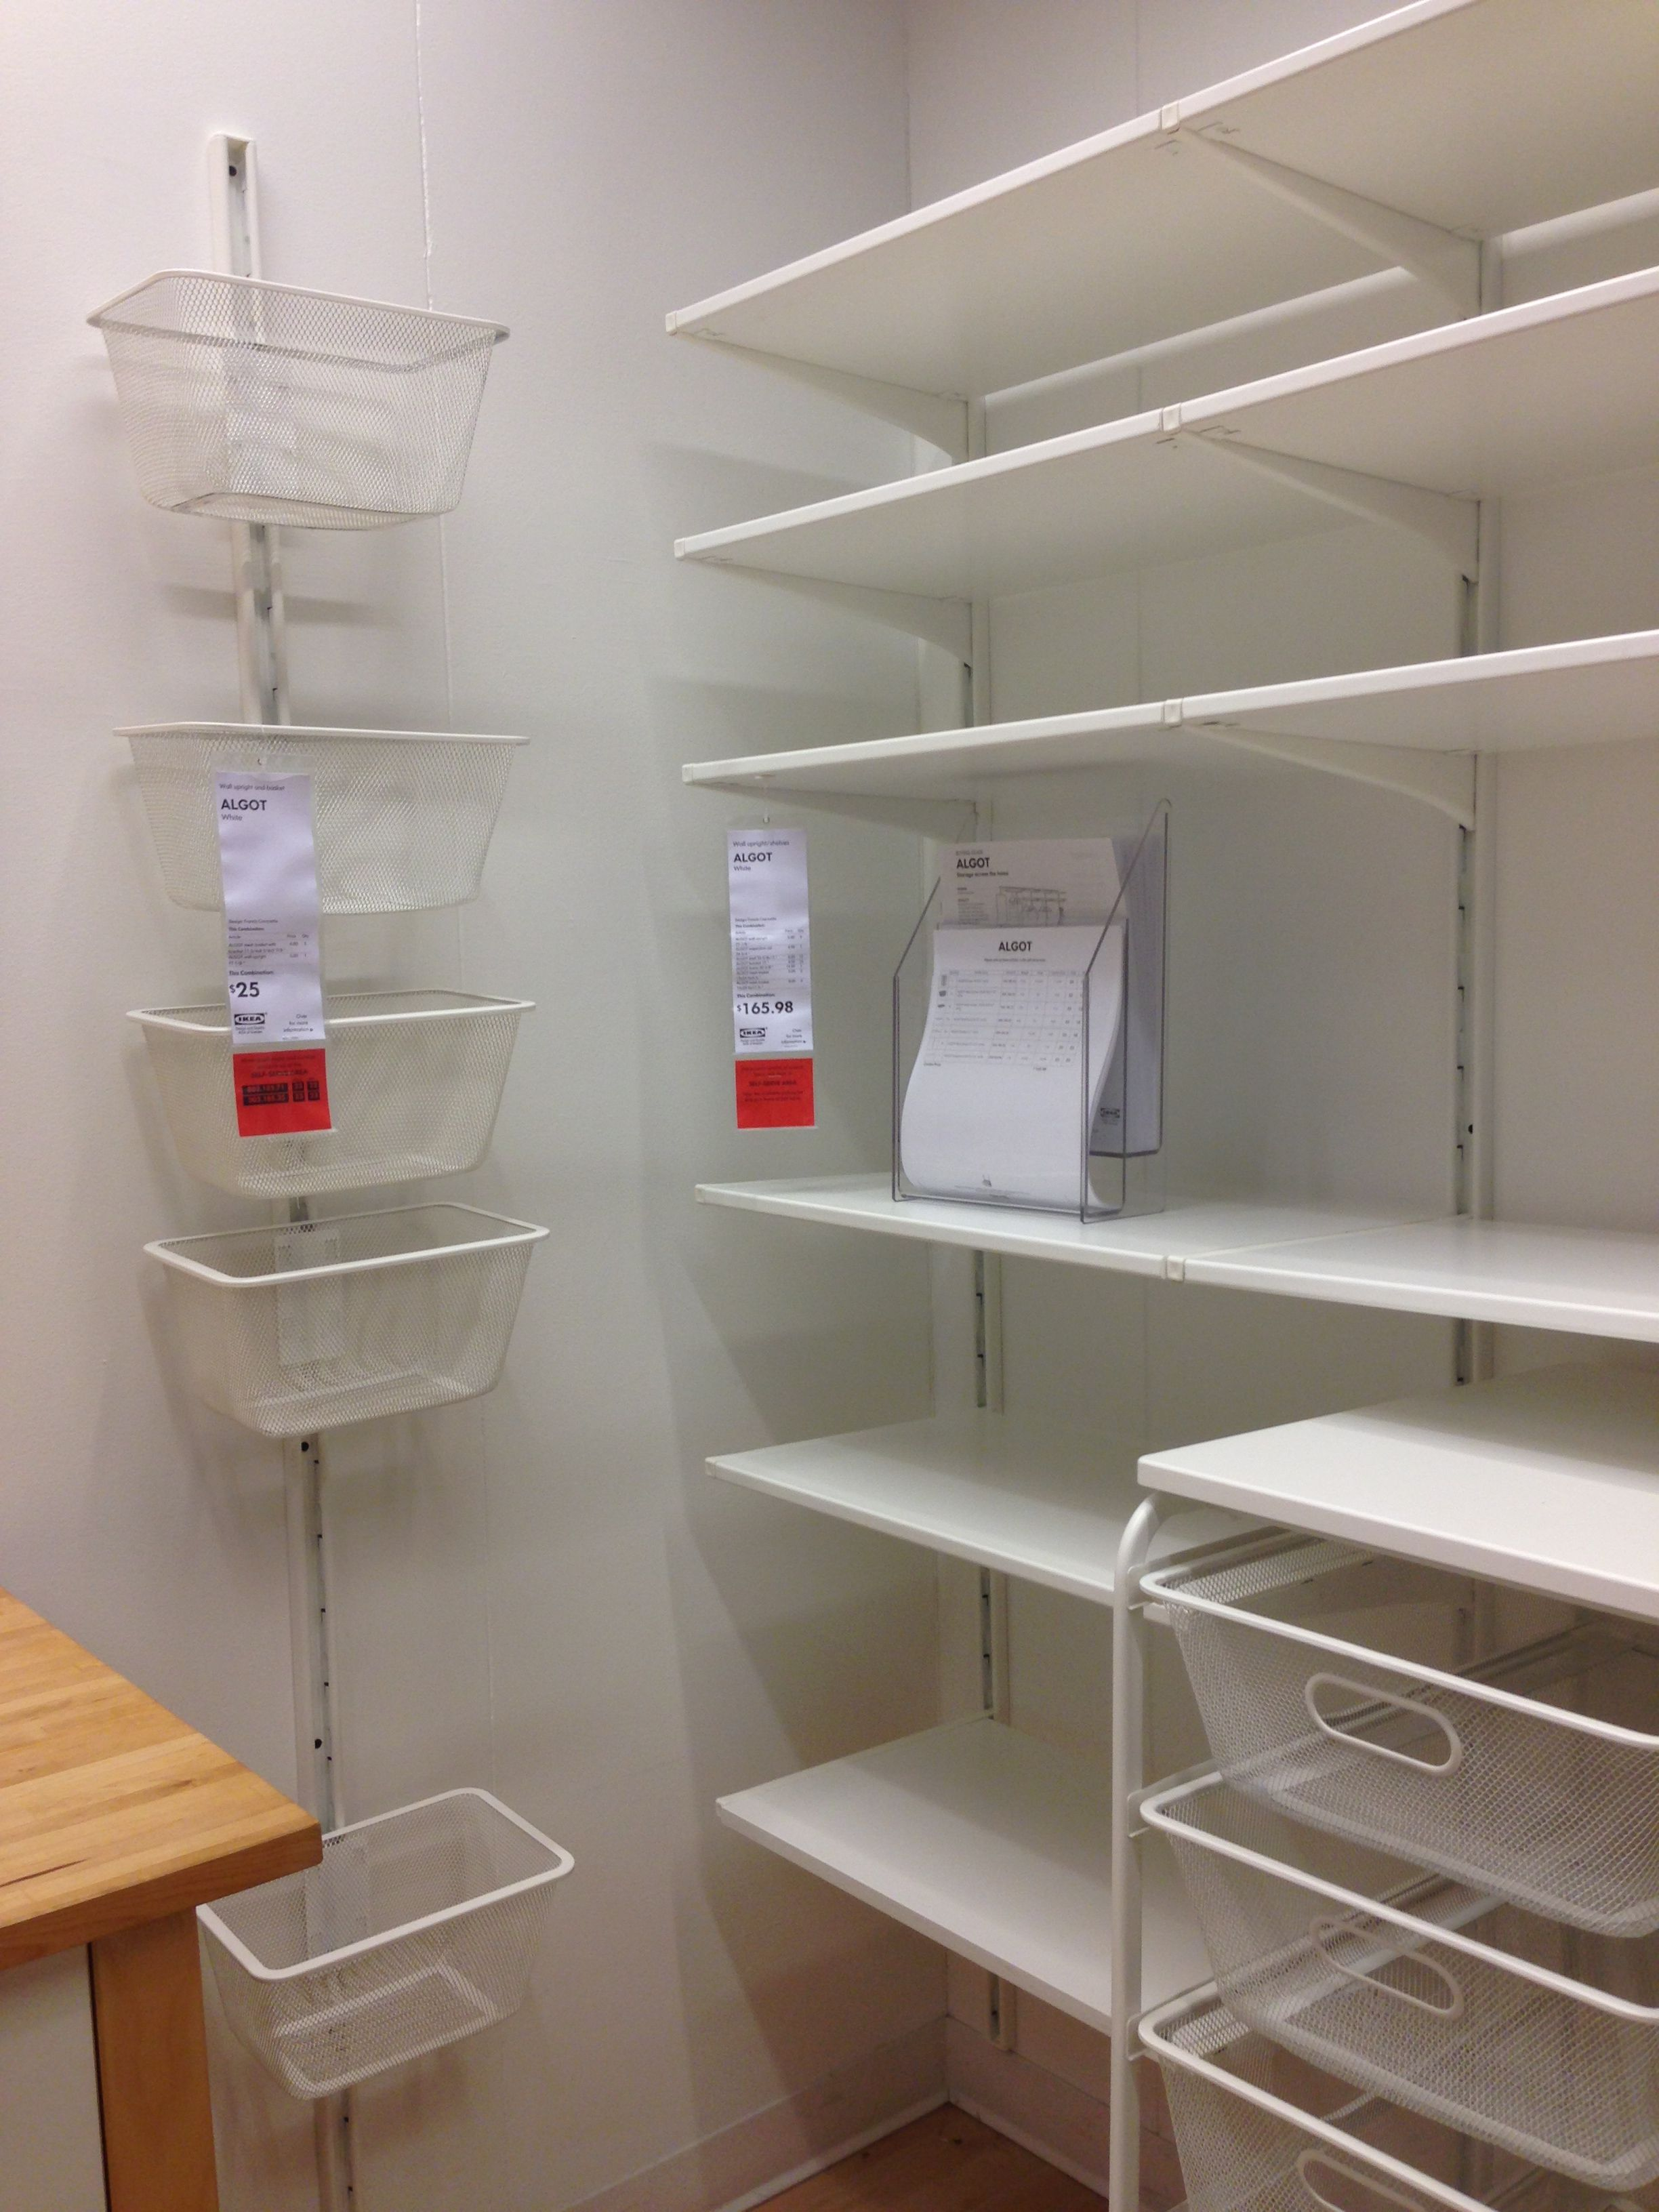 Ikea Küche Organisation Algot Pantry Organization Storage Abstellraum